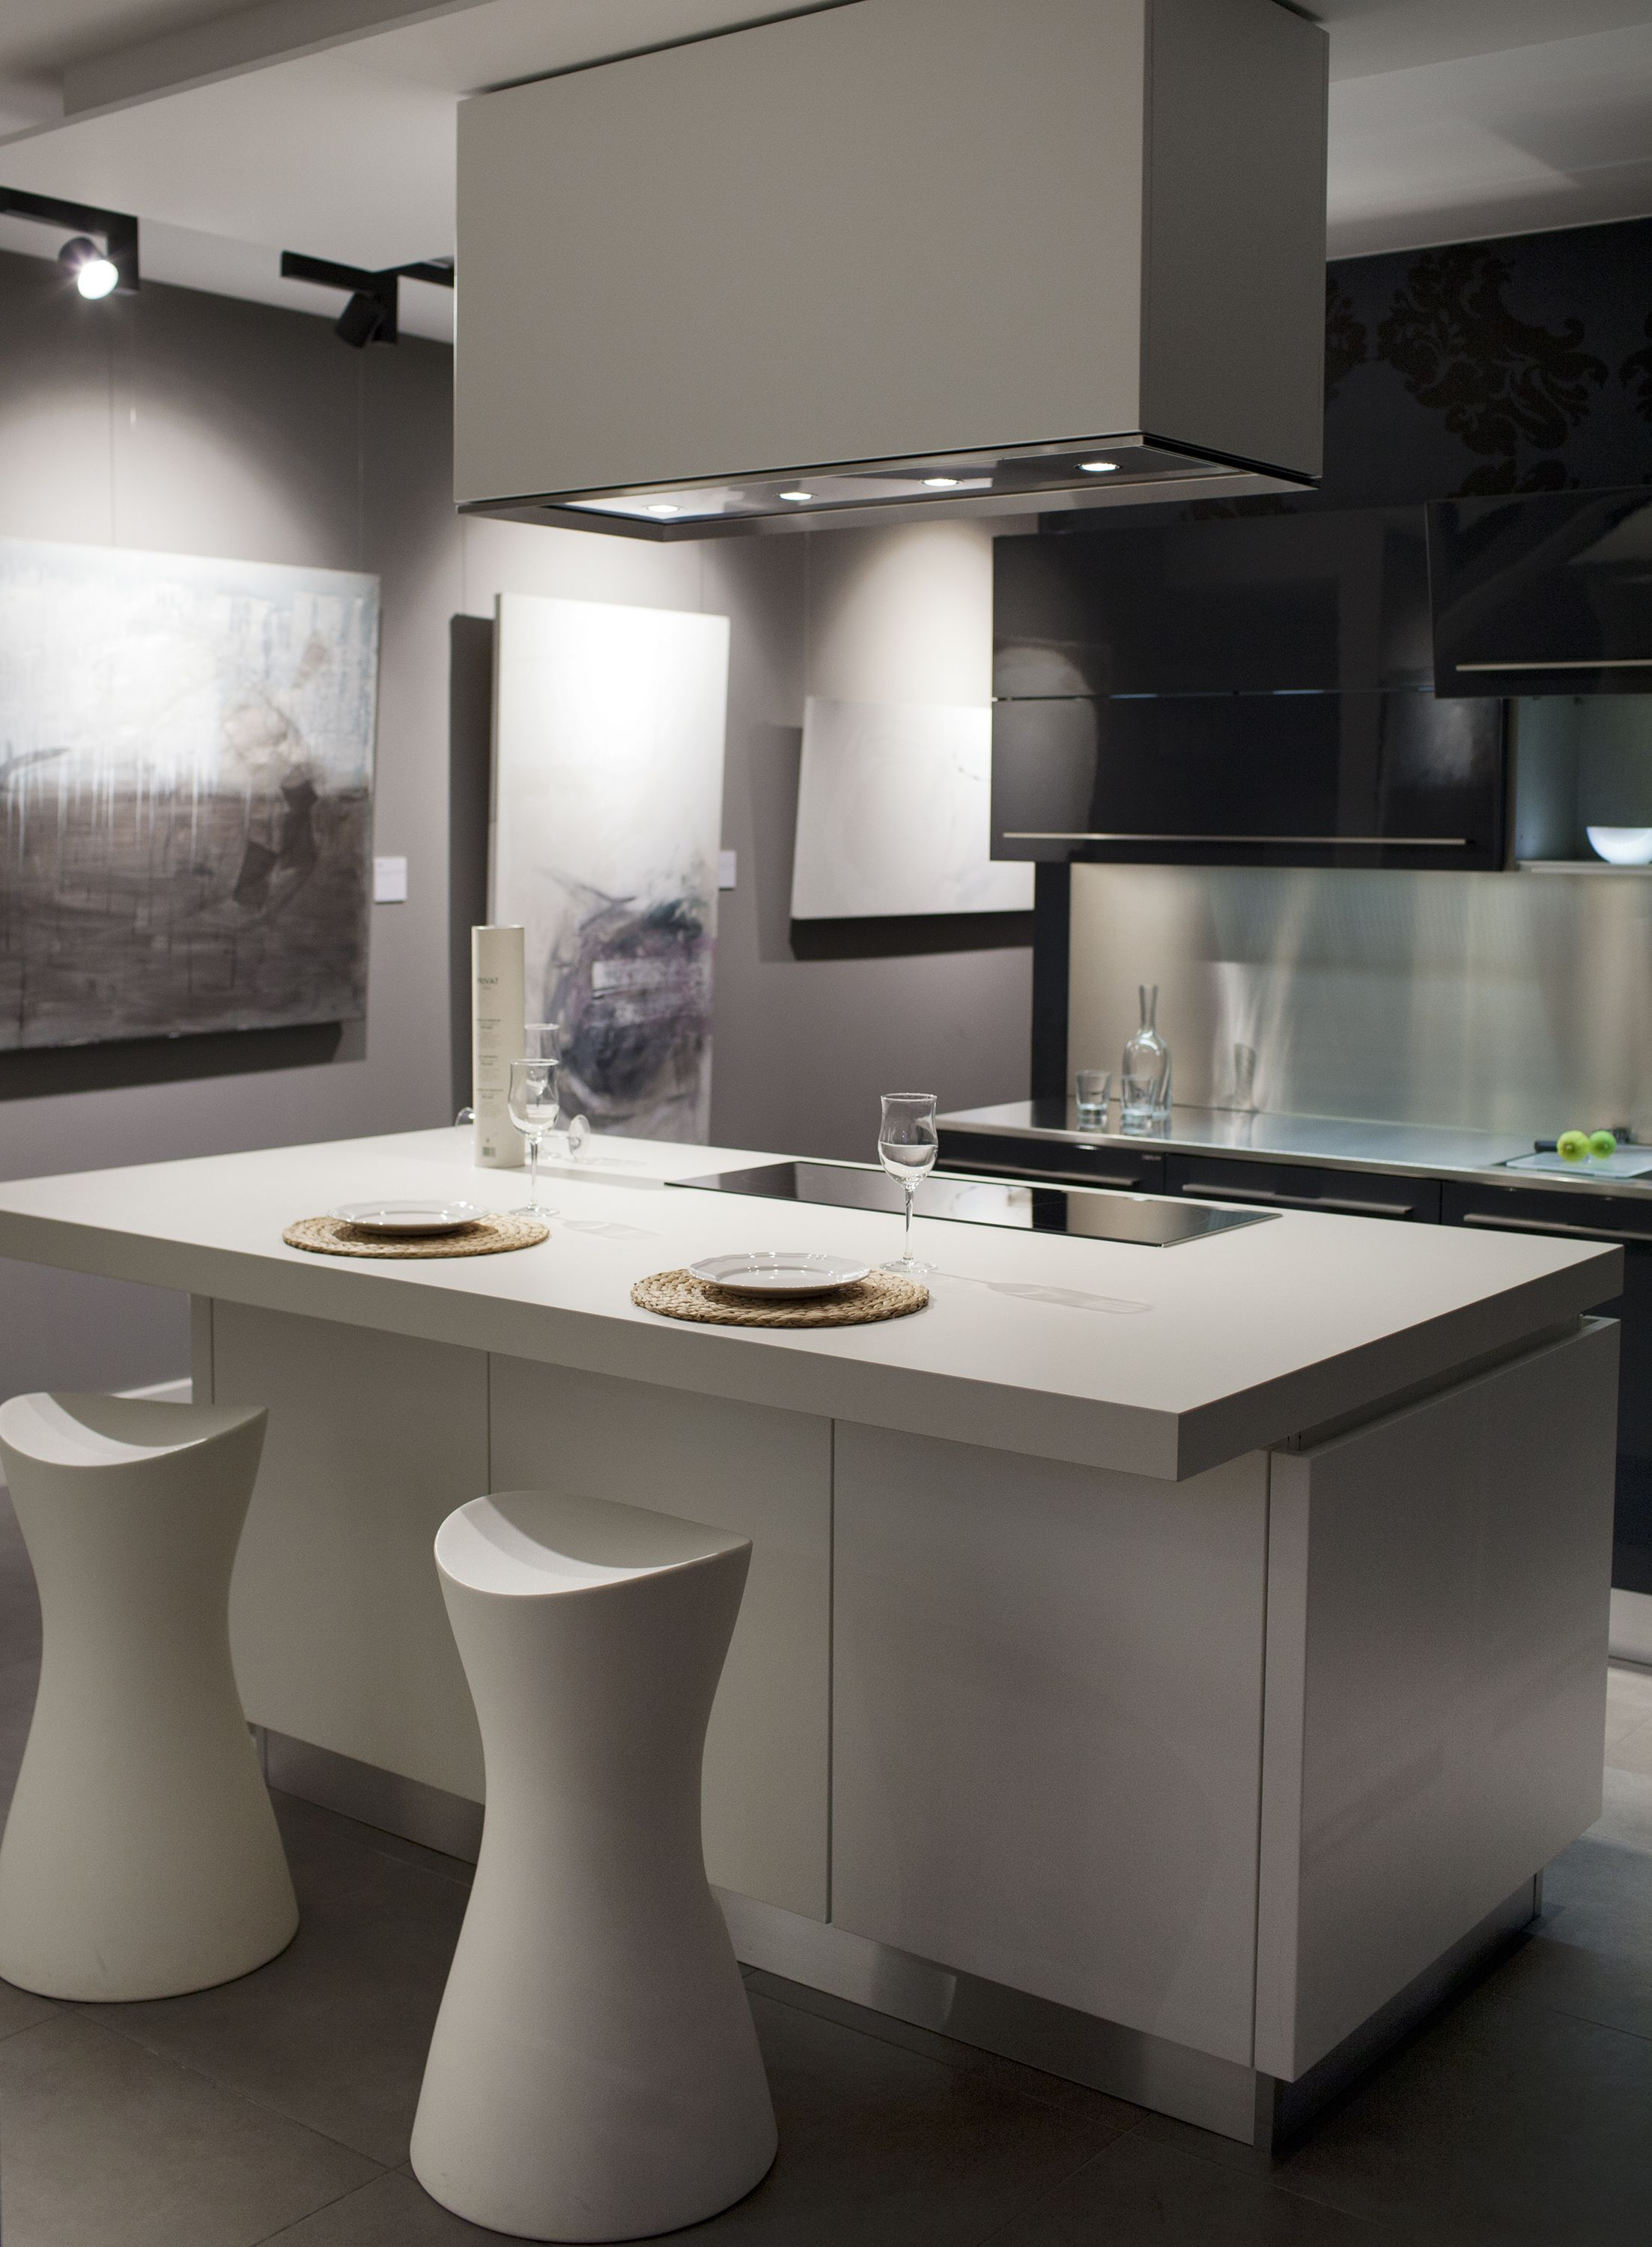 Countertops Of 10 Mm By Neolith Nieve Model Colorfeelcollection